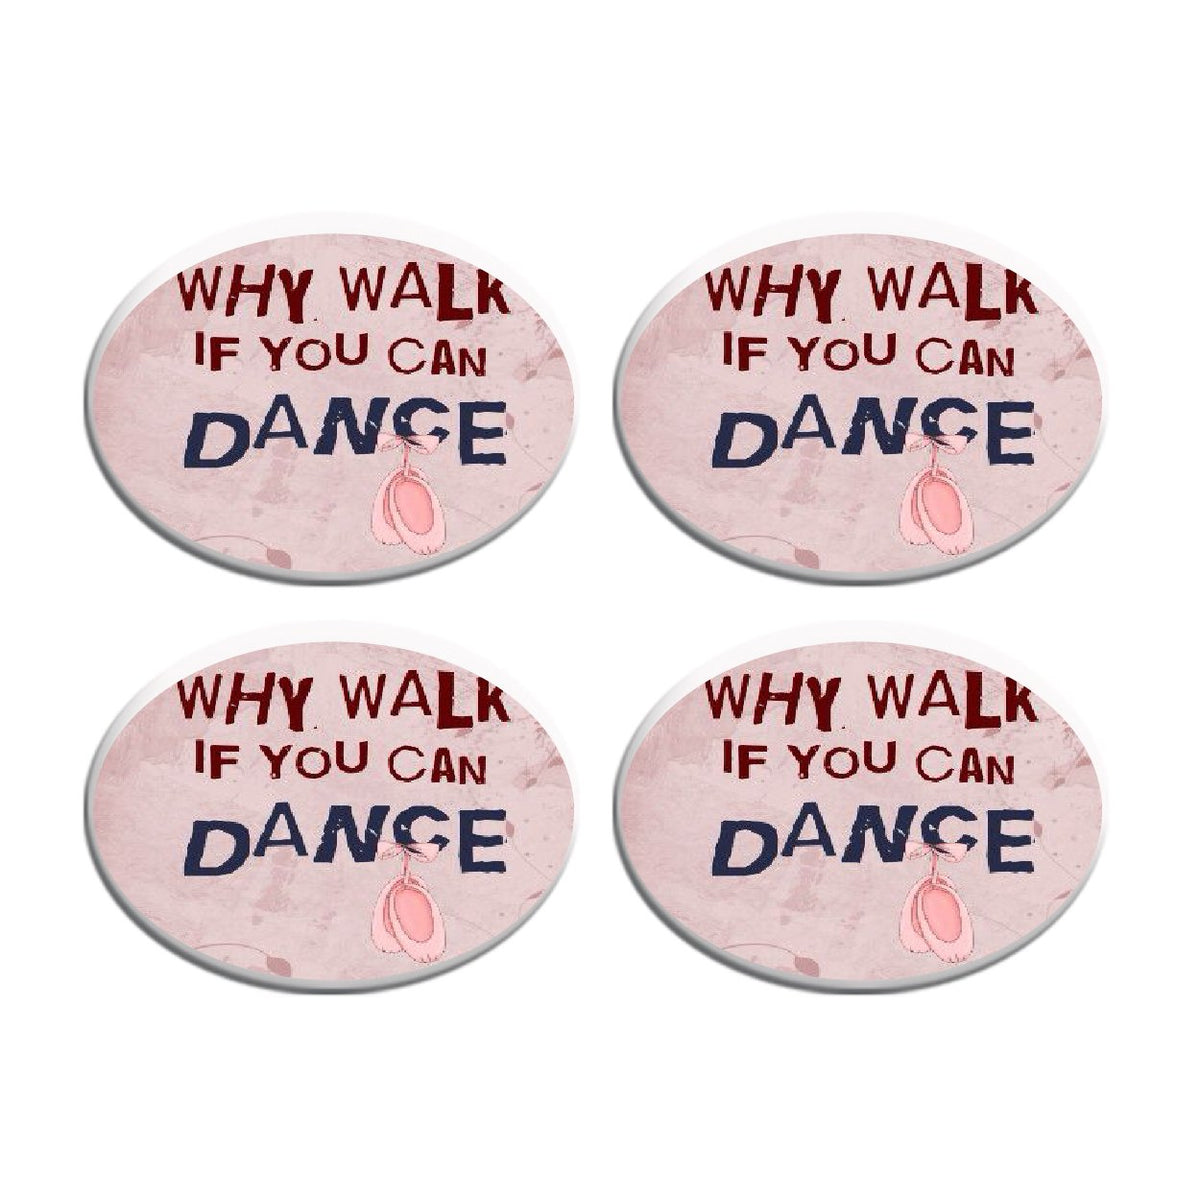 Why Walk If You Can Dance